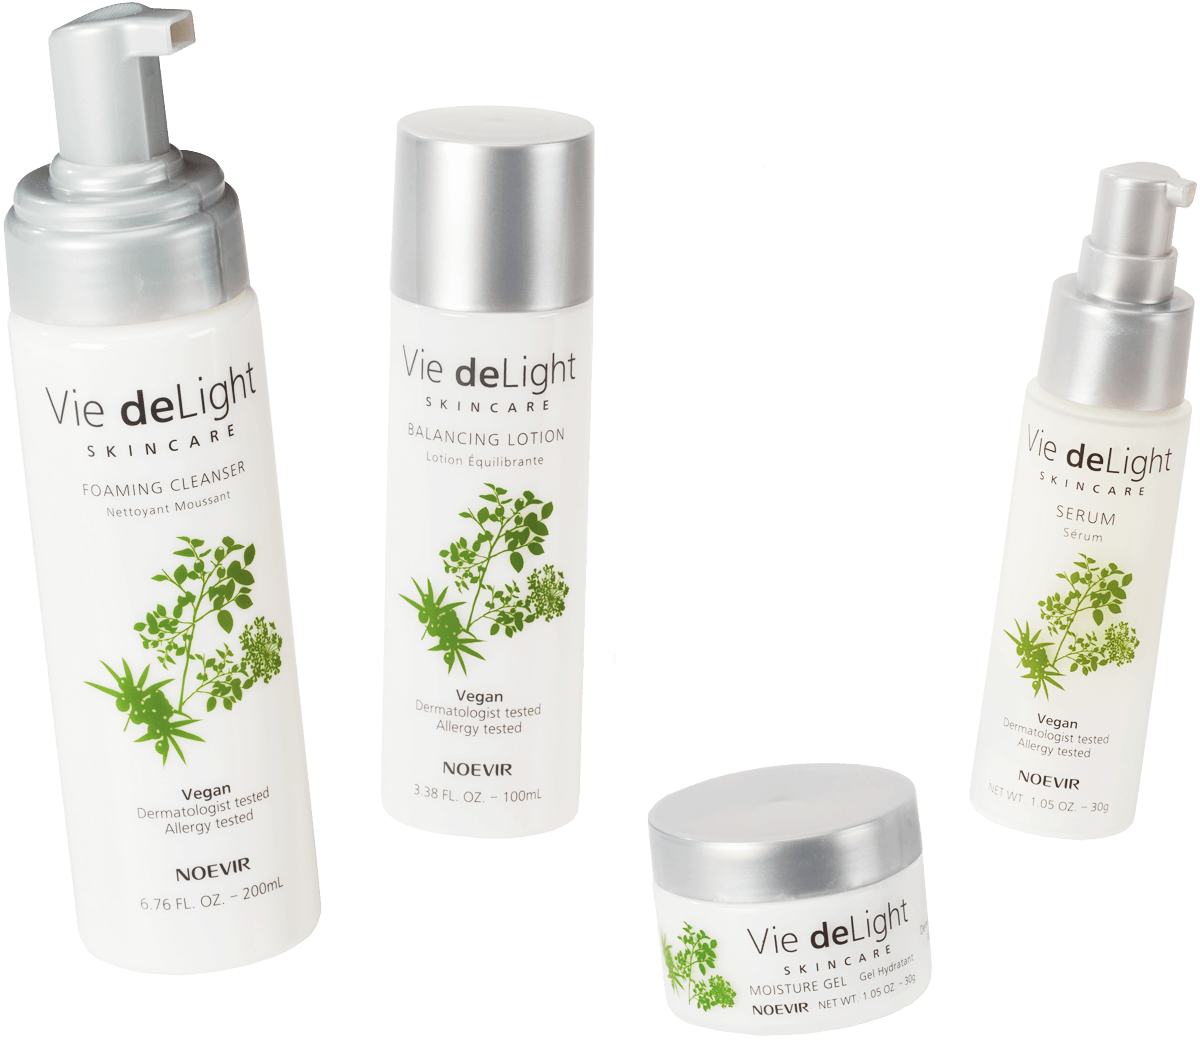 Vie Delight Skincare Products